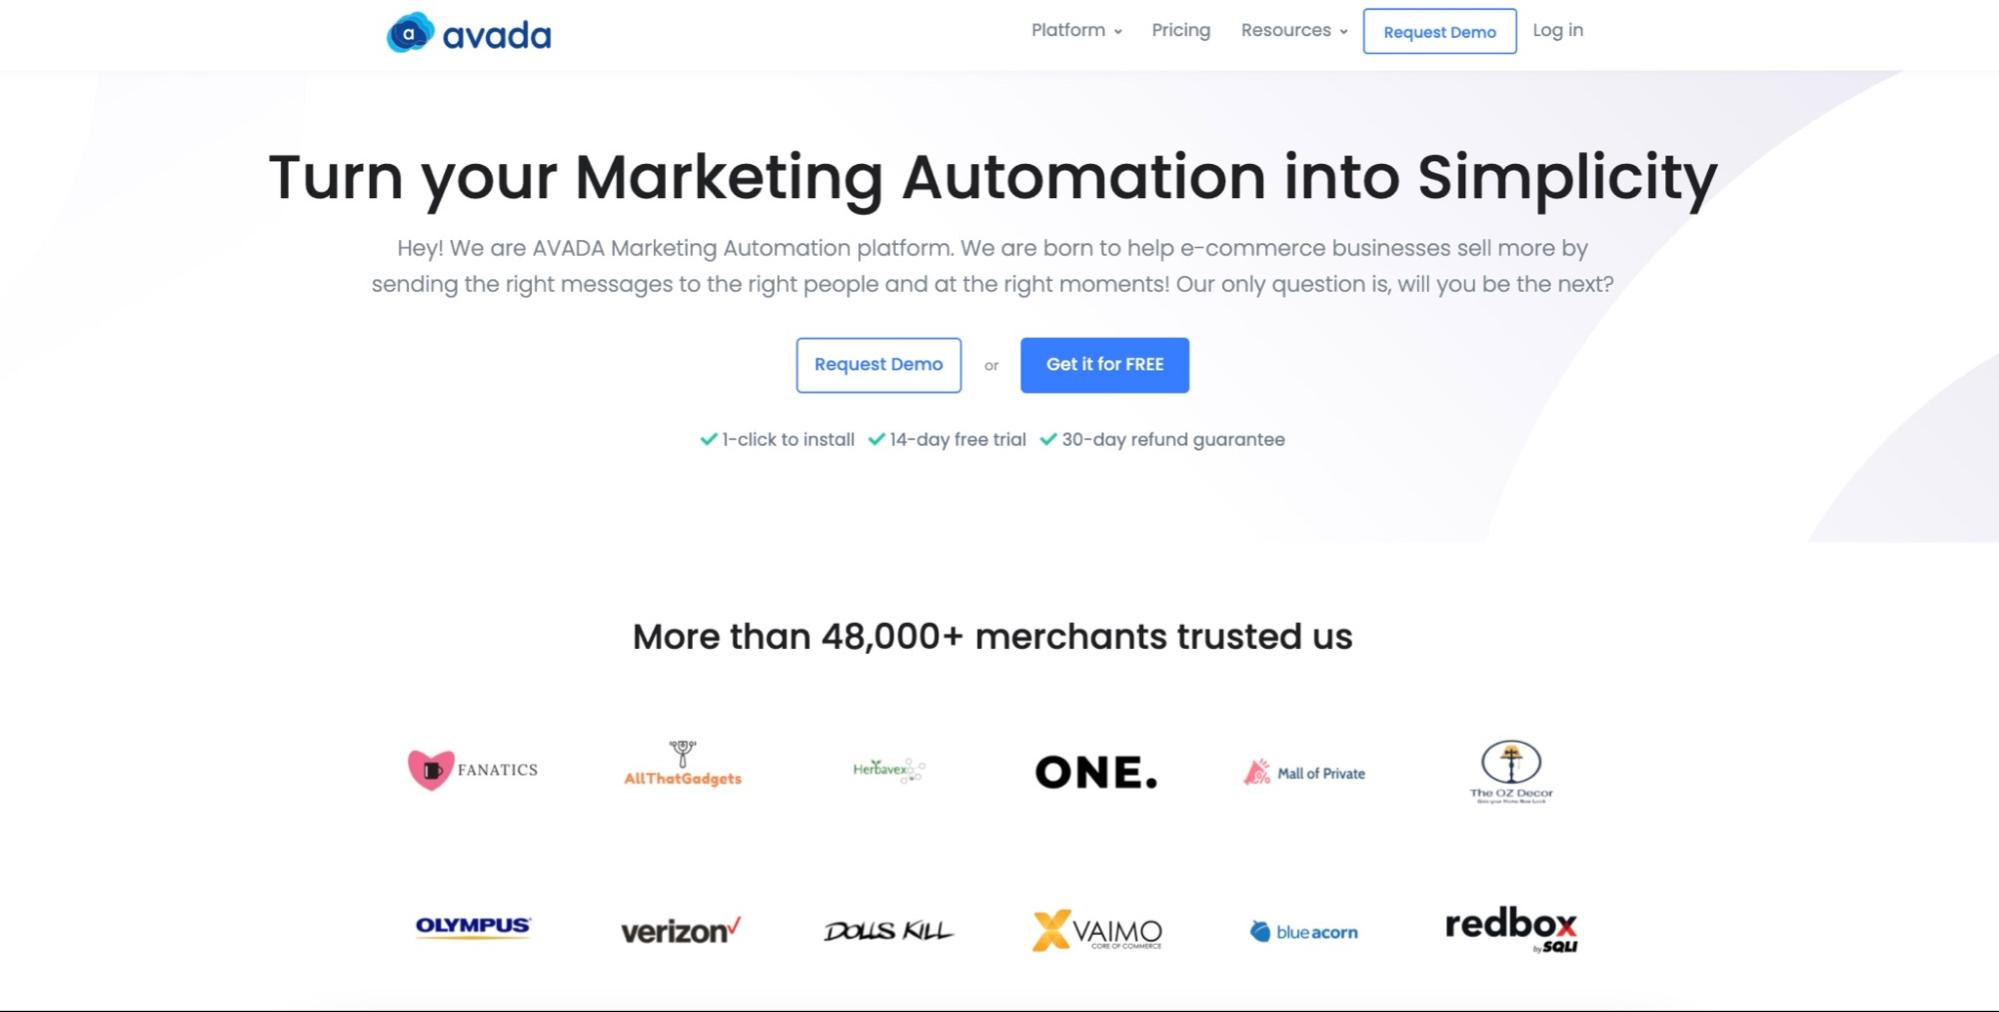 Use AVADA Marketing Automation to carry out your email marketing plan